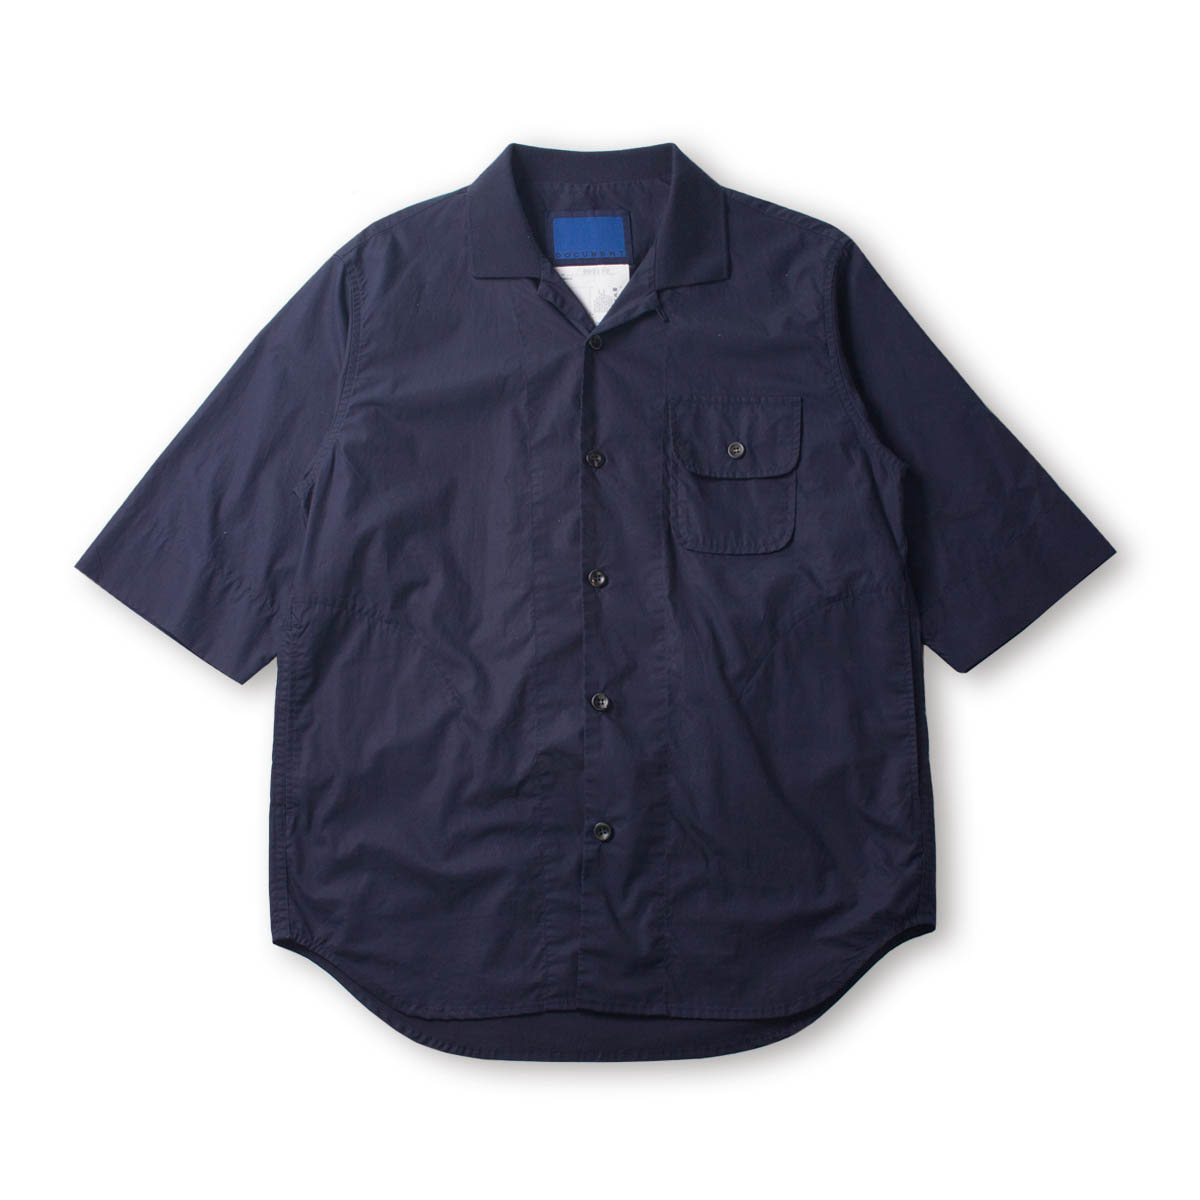 [DOCUMENT] M123 CAFRI SHIRT 'NAVY'